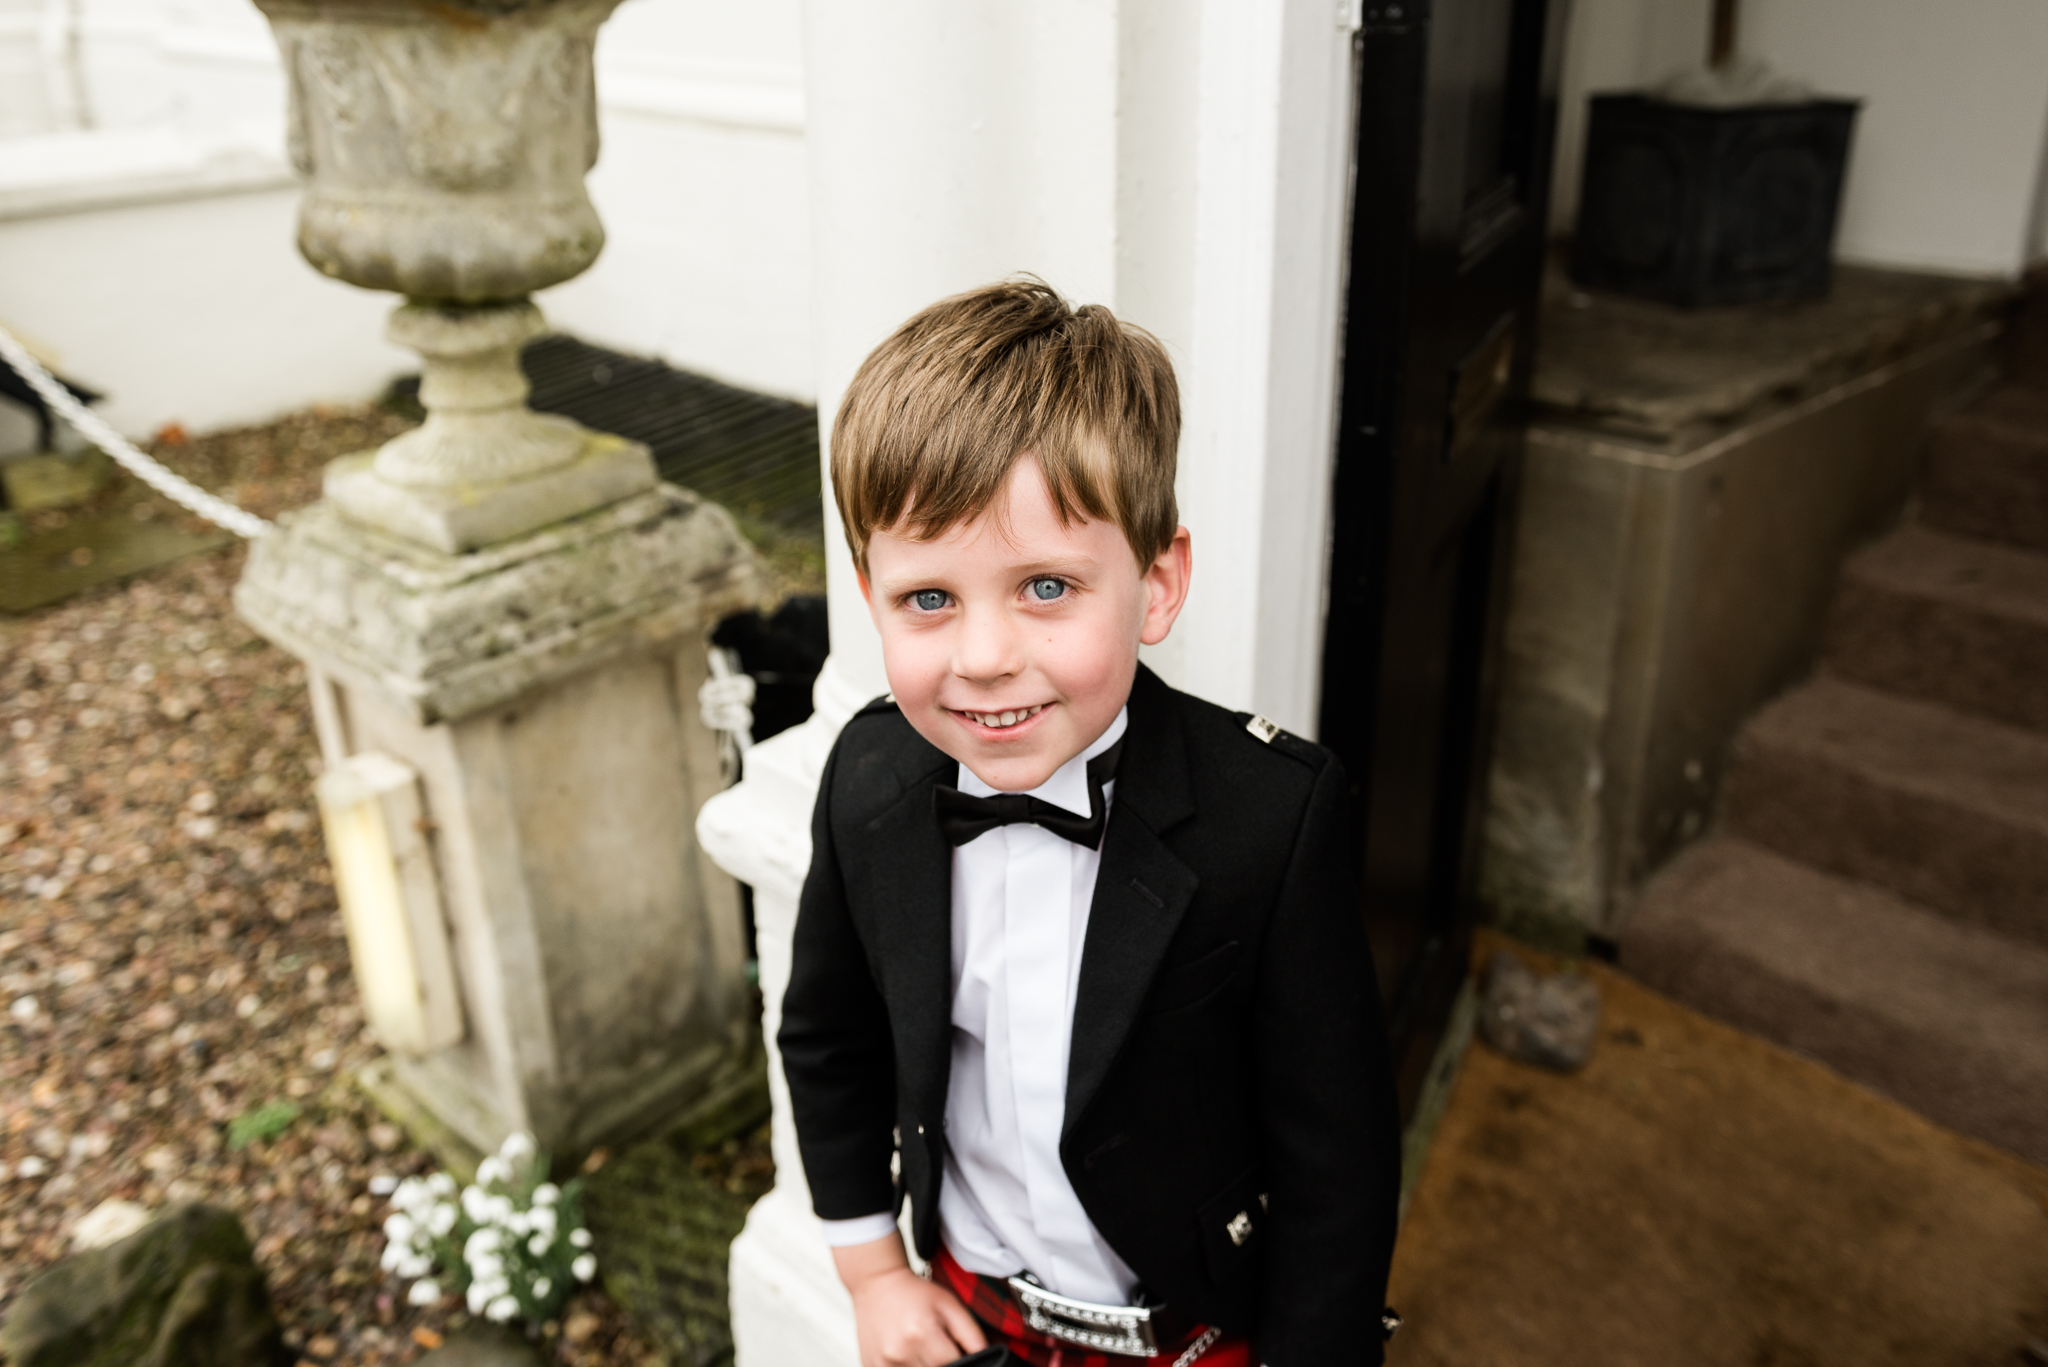 English Winter Wedding Photography at Somerford Hall, Staffordshire Red Bus Double Decker Kilts Bagpiper-52.jpg